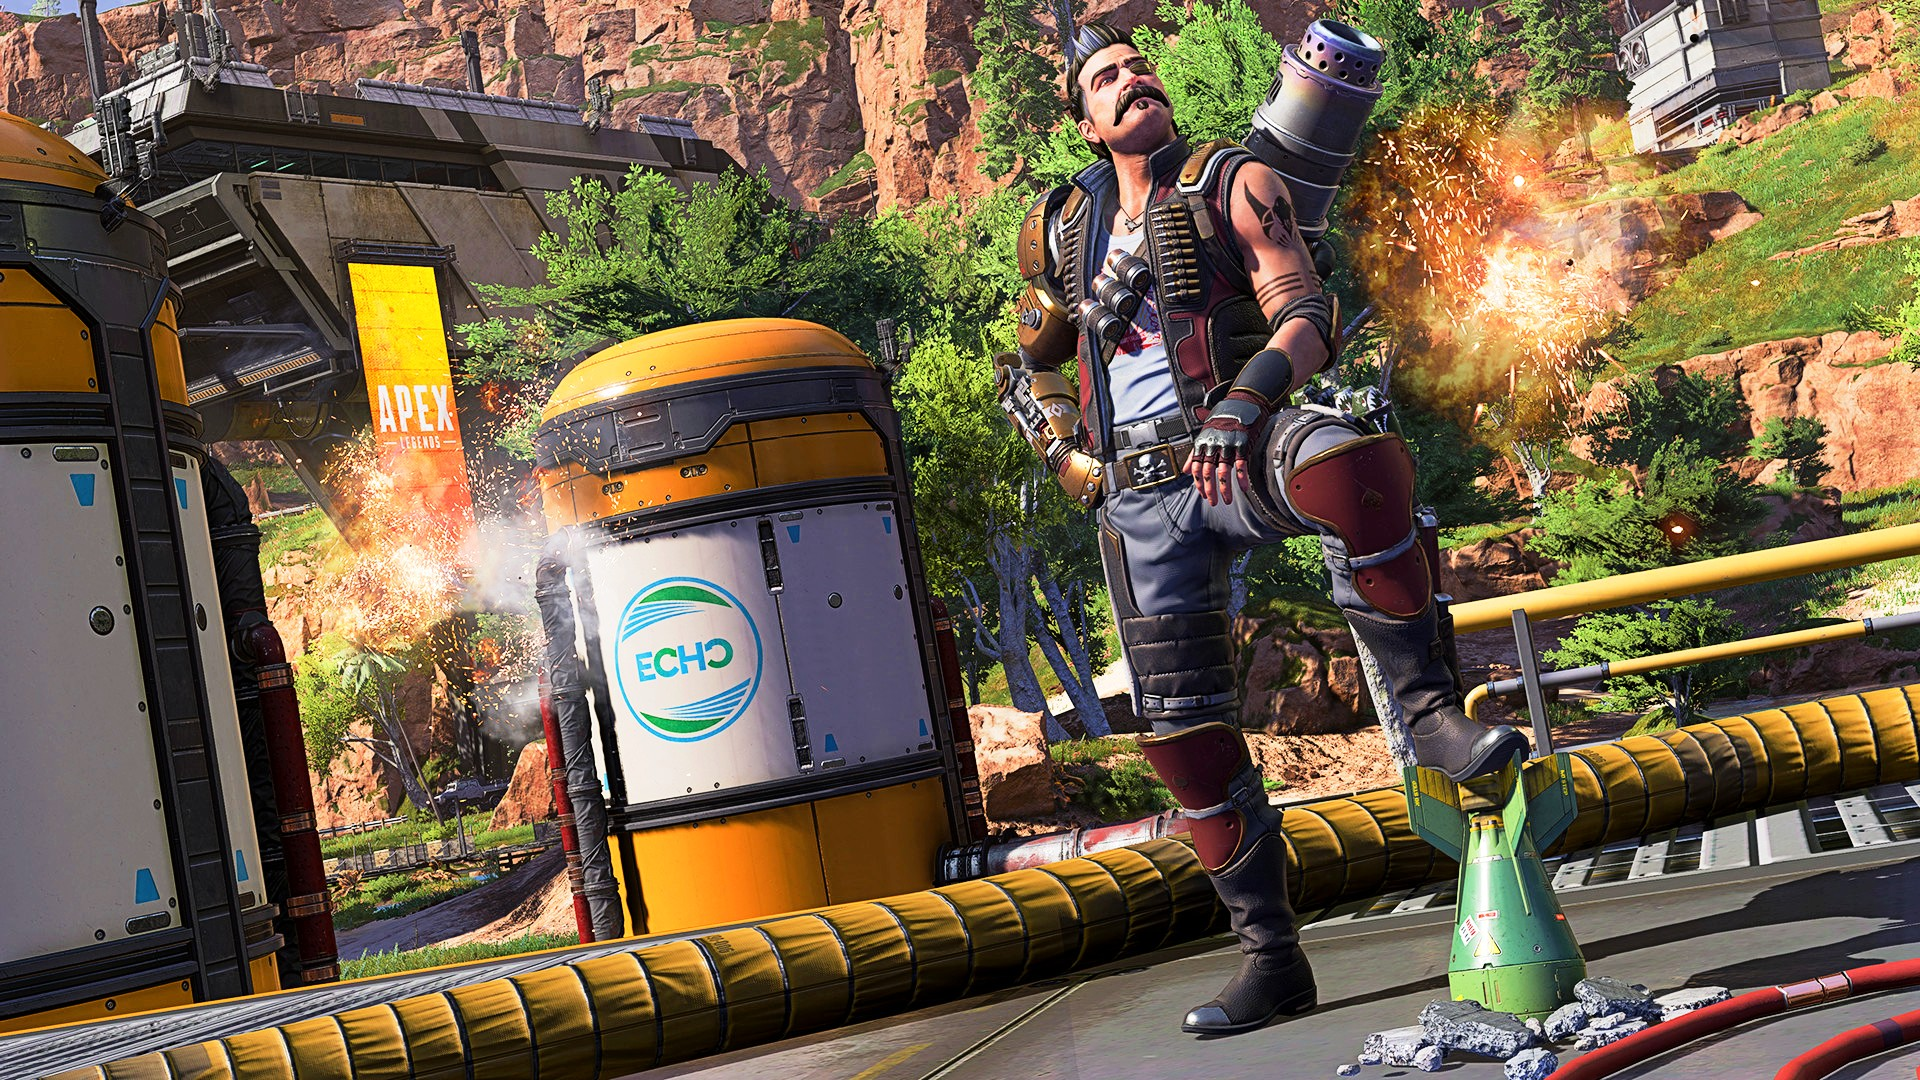 Apex Legends broke another player record on Steam